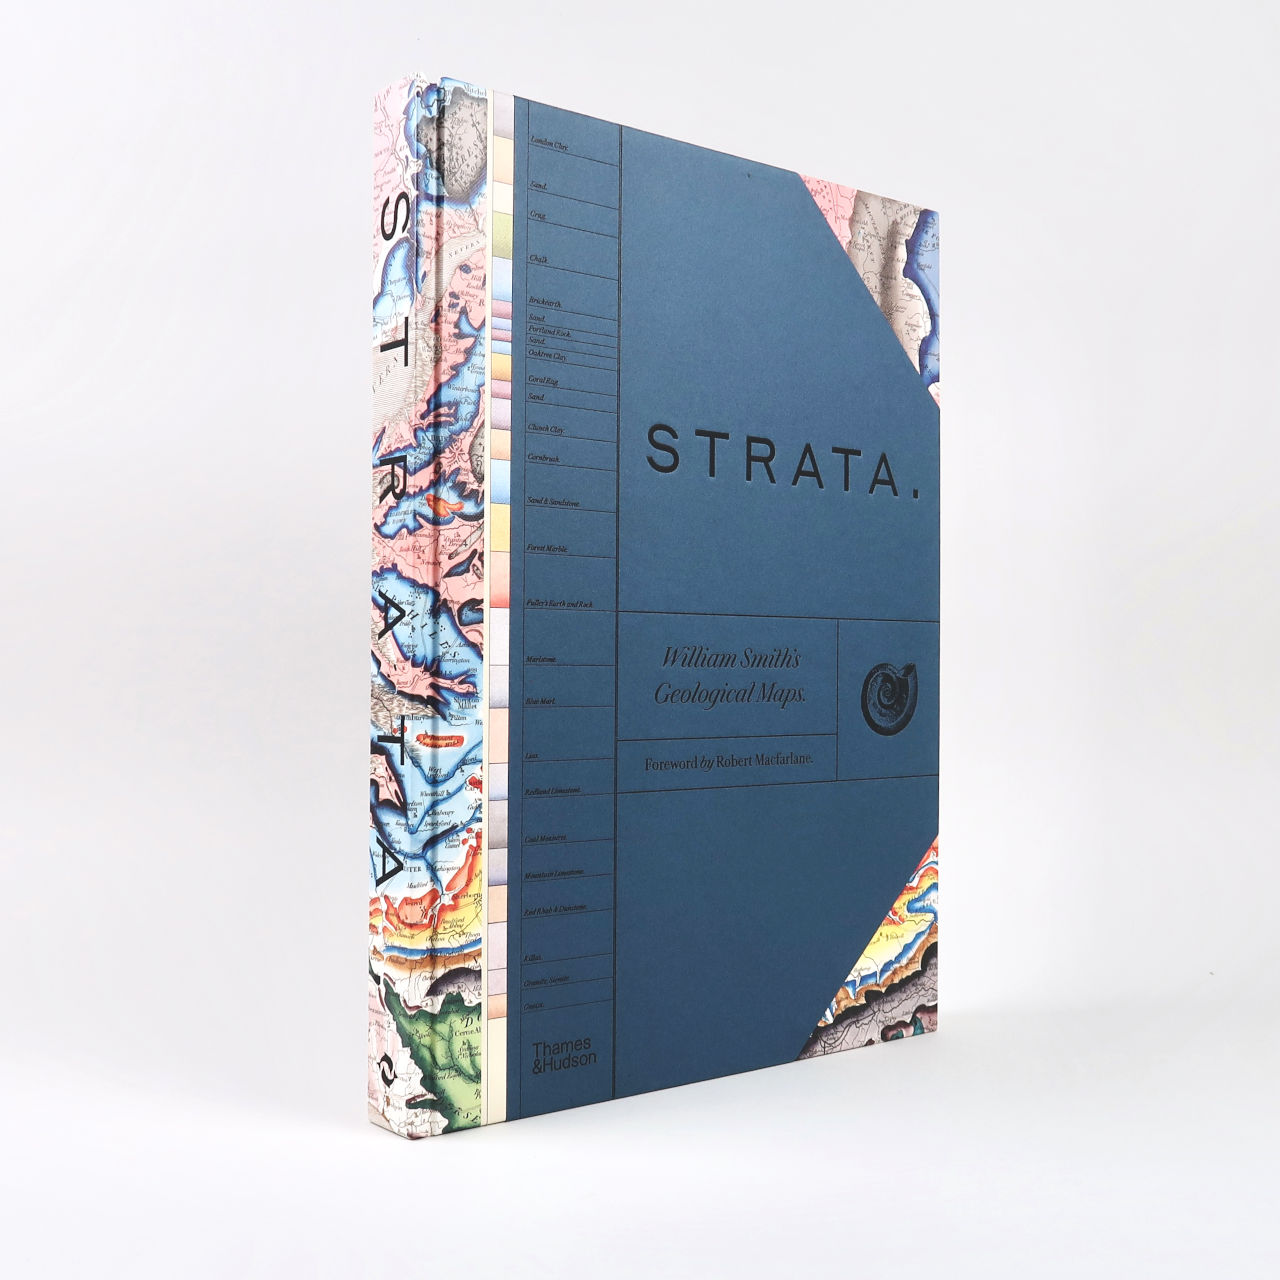 Strata: William Smith's Geological Maps